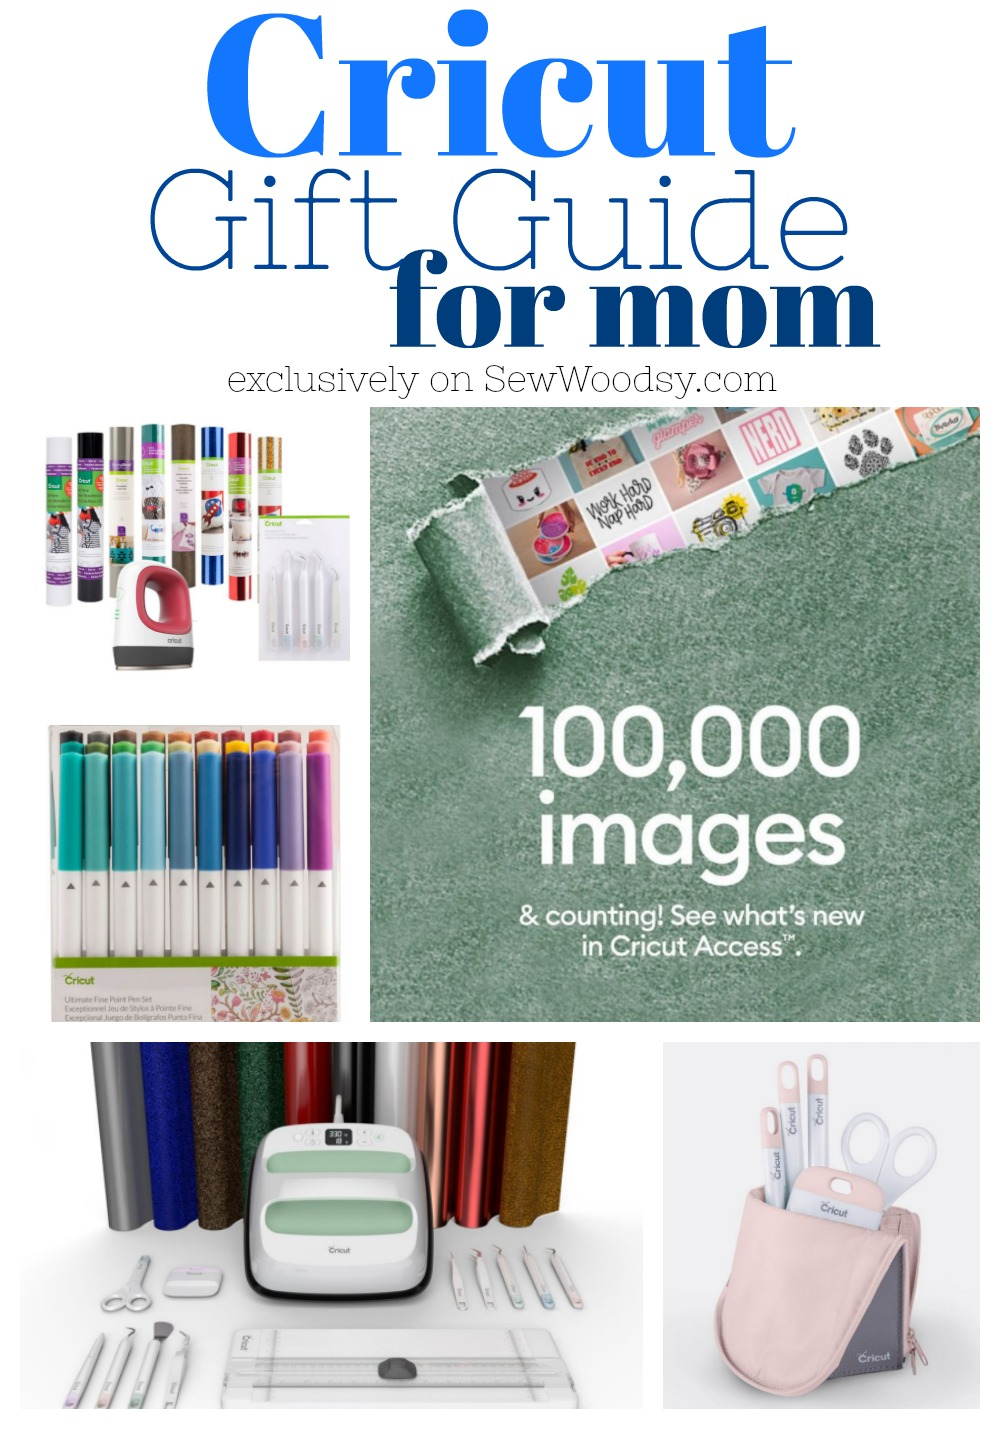 Collage of Cricut products with text on image.